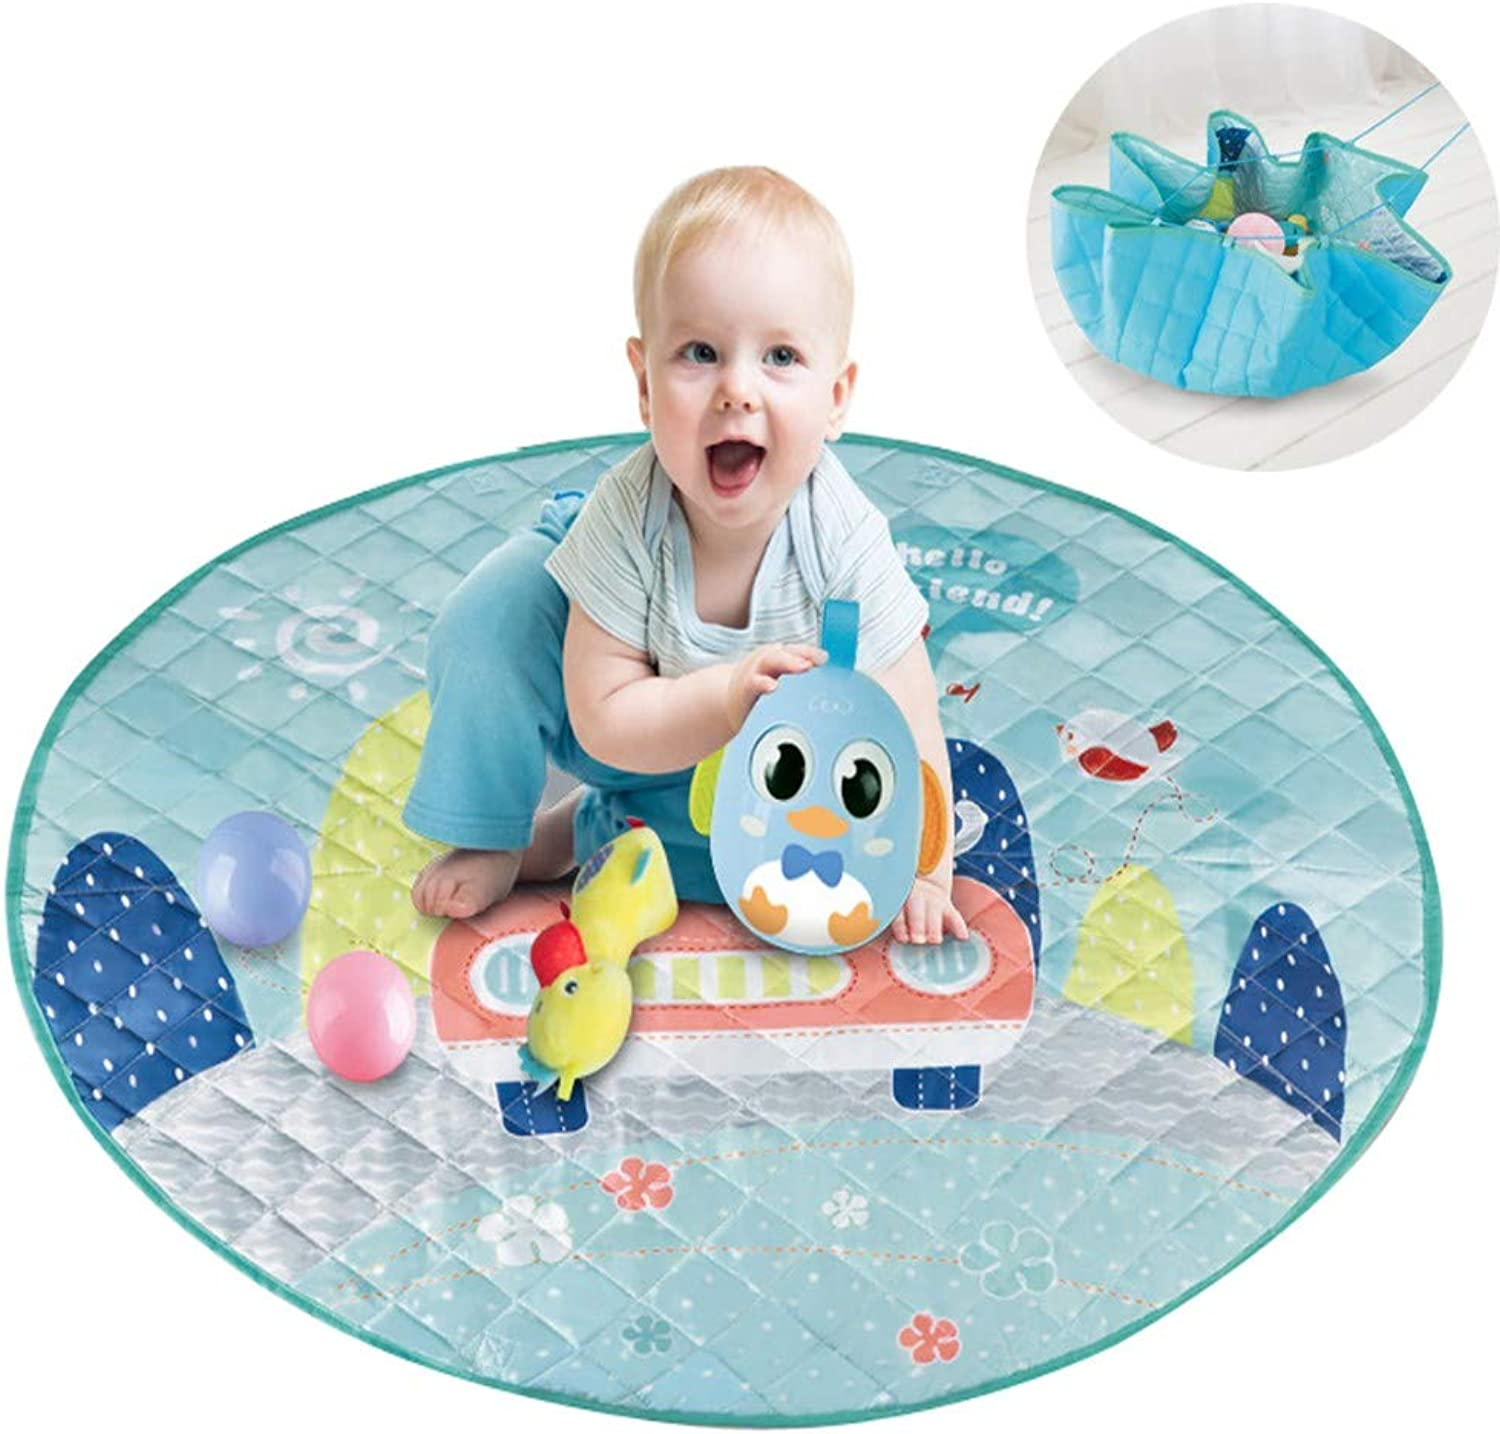 Baby Game Blanket Round Nursery Rug Carpets Playmat Cotton, Kids Toys Organizer Storage Bags, Infant Crawling Mat, Thicken Floor Mats, Kids Room Decorations,96CM